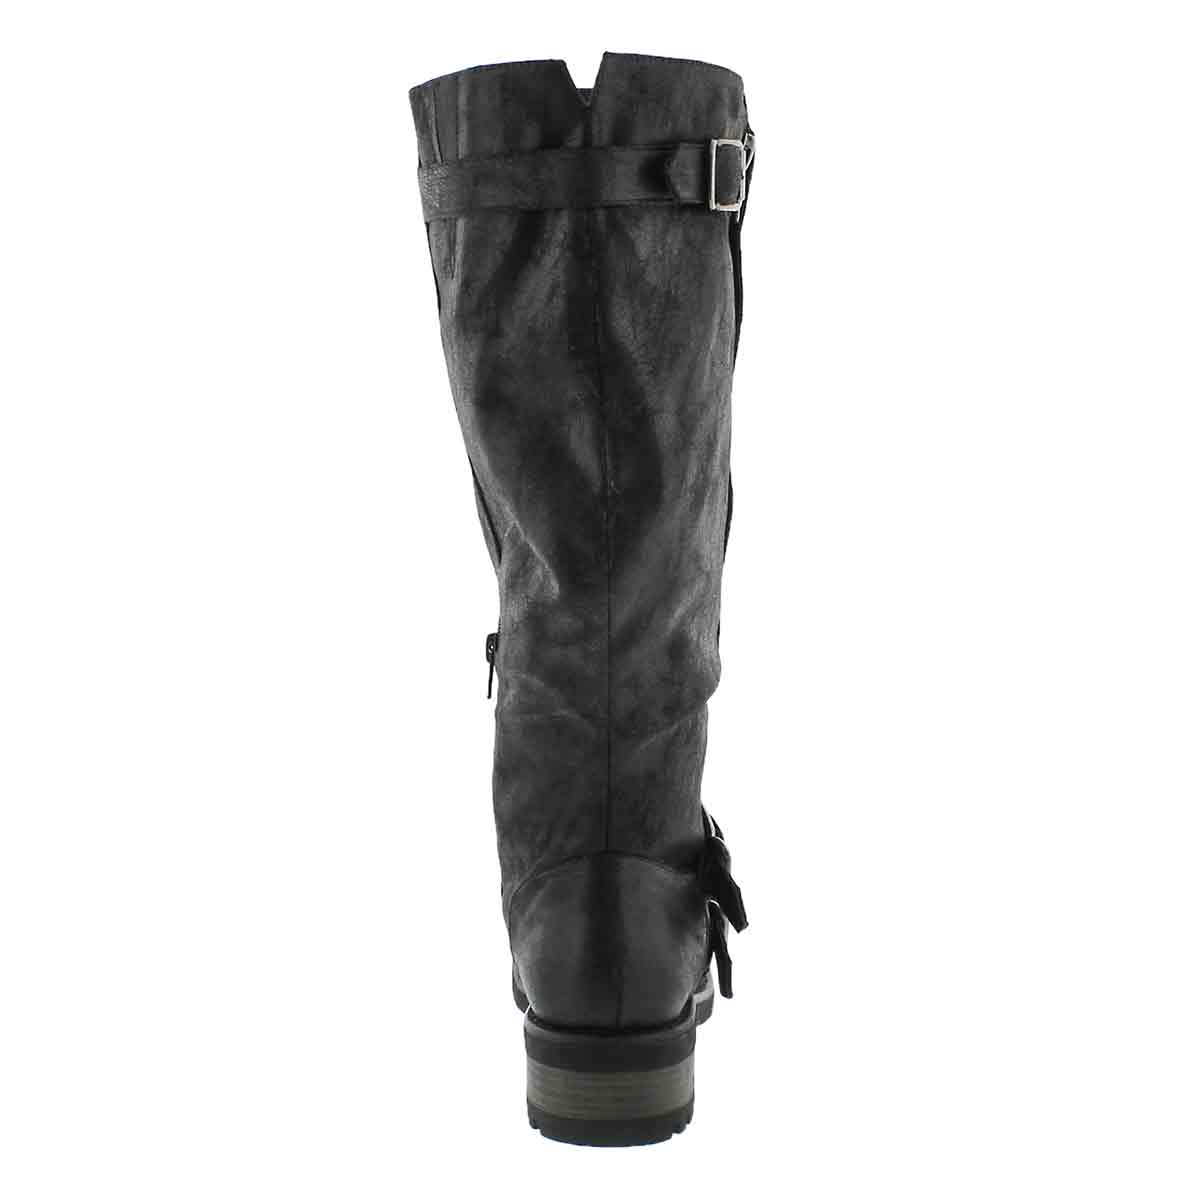 Lds Blixi III black riding boot